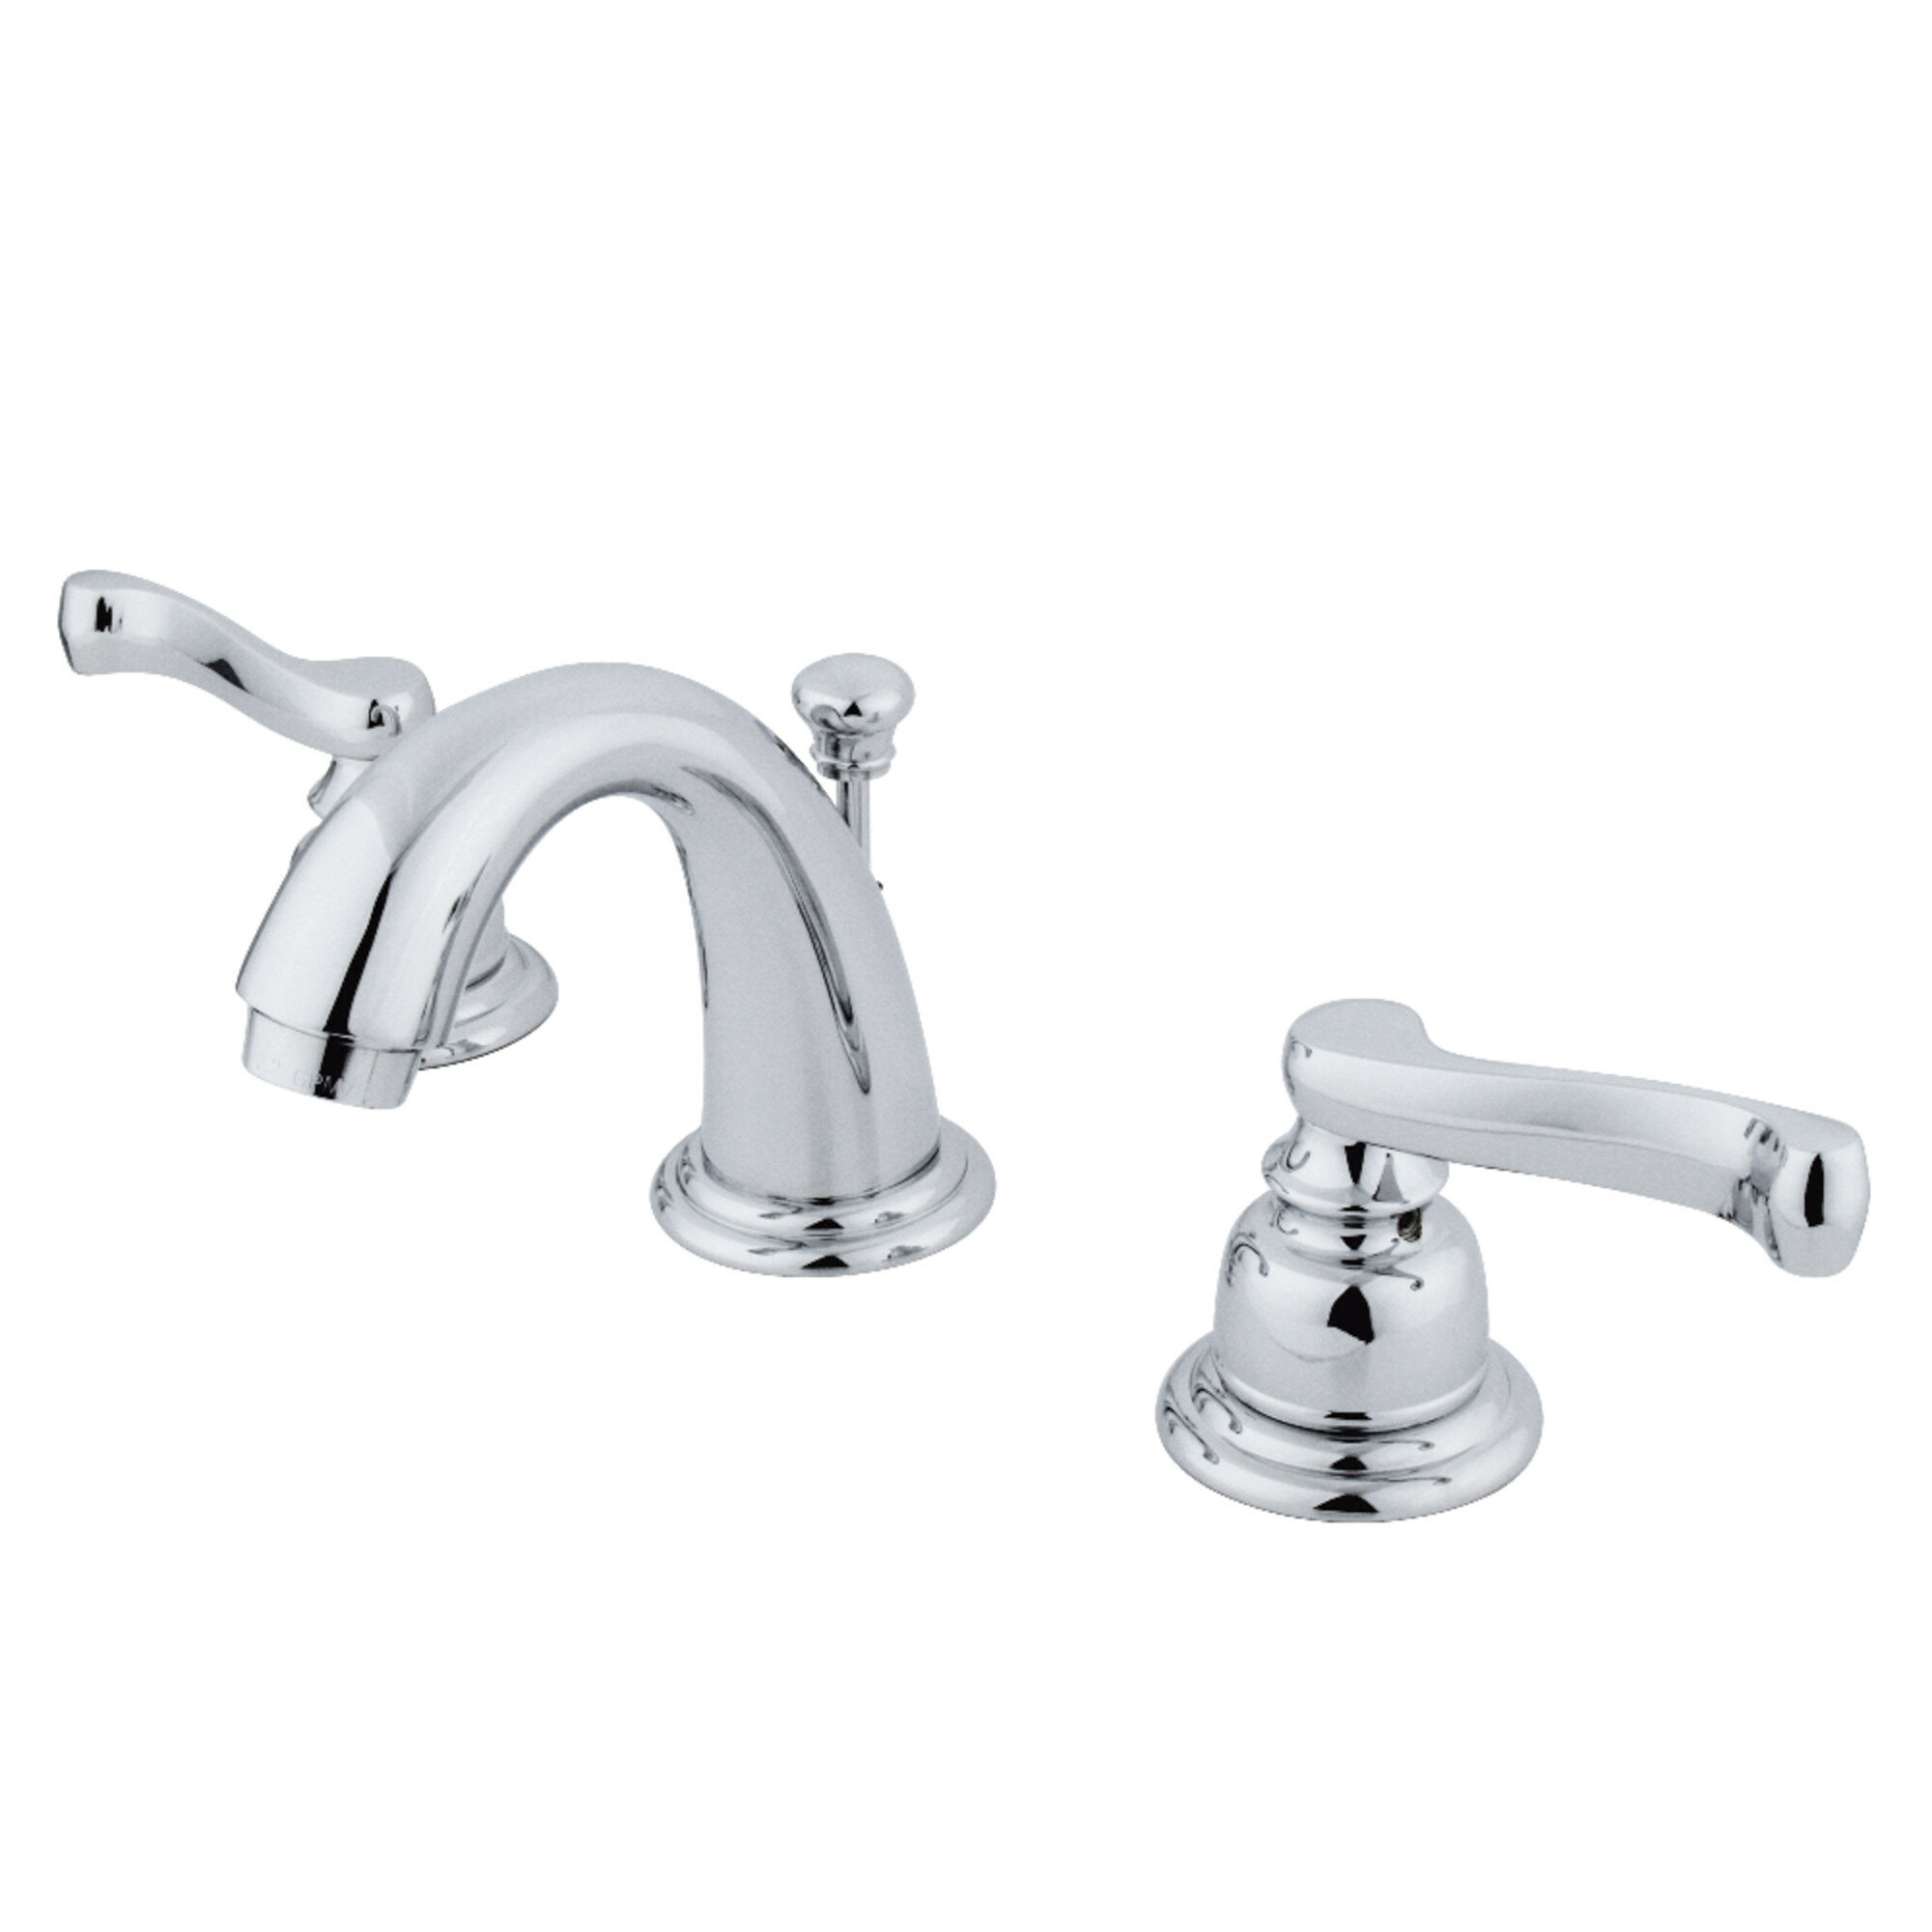 Kingston Brass Royale Widespread Bathroom Faucet With Drain Assembly Reviews Wayfair